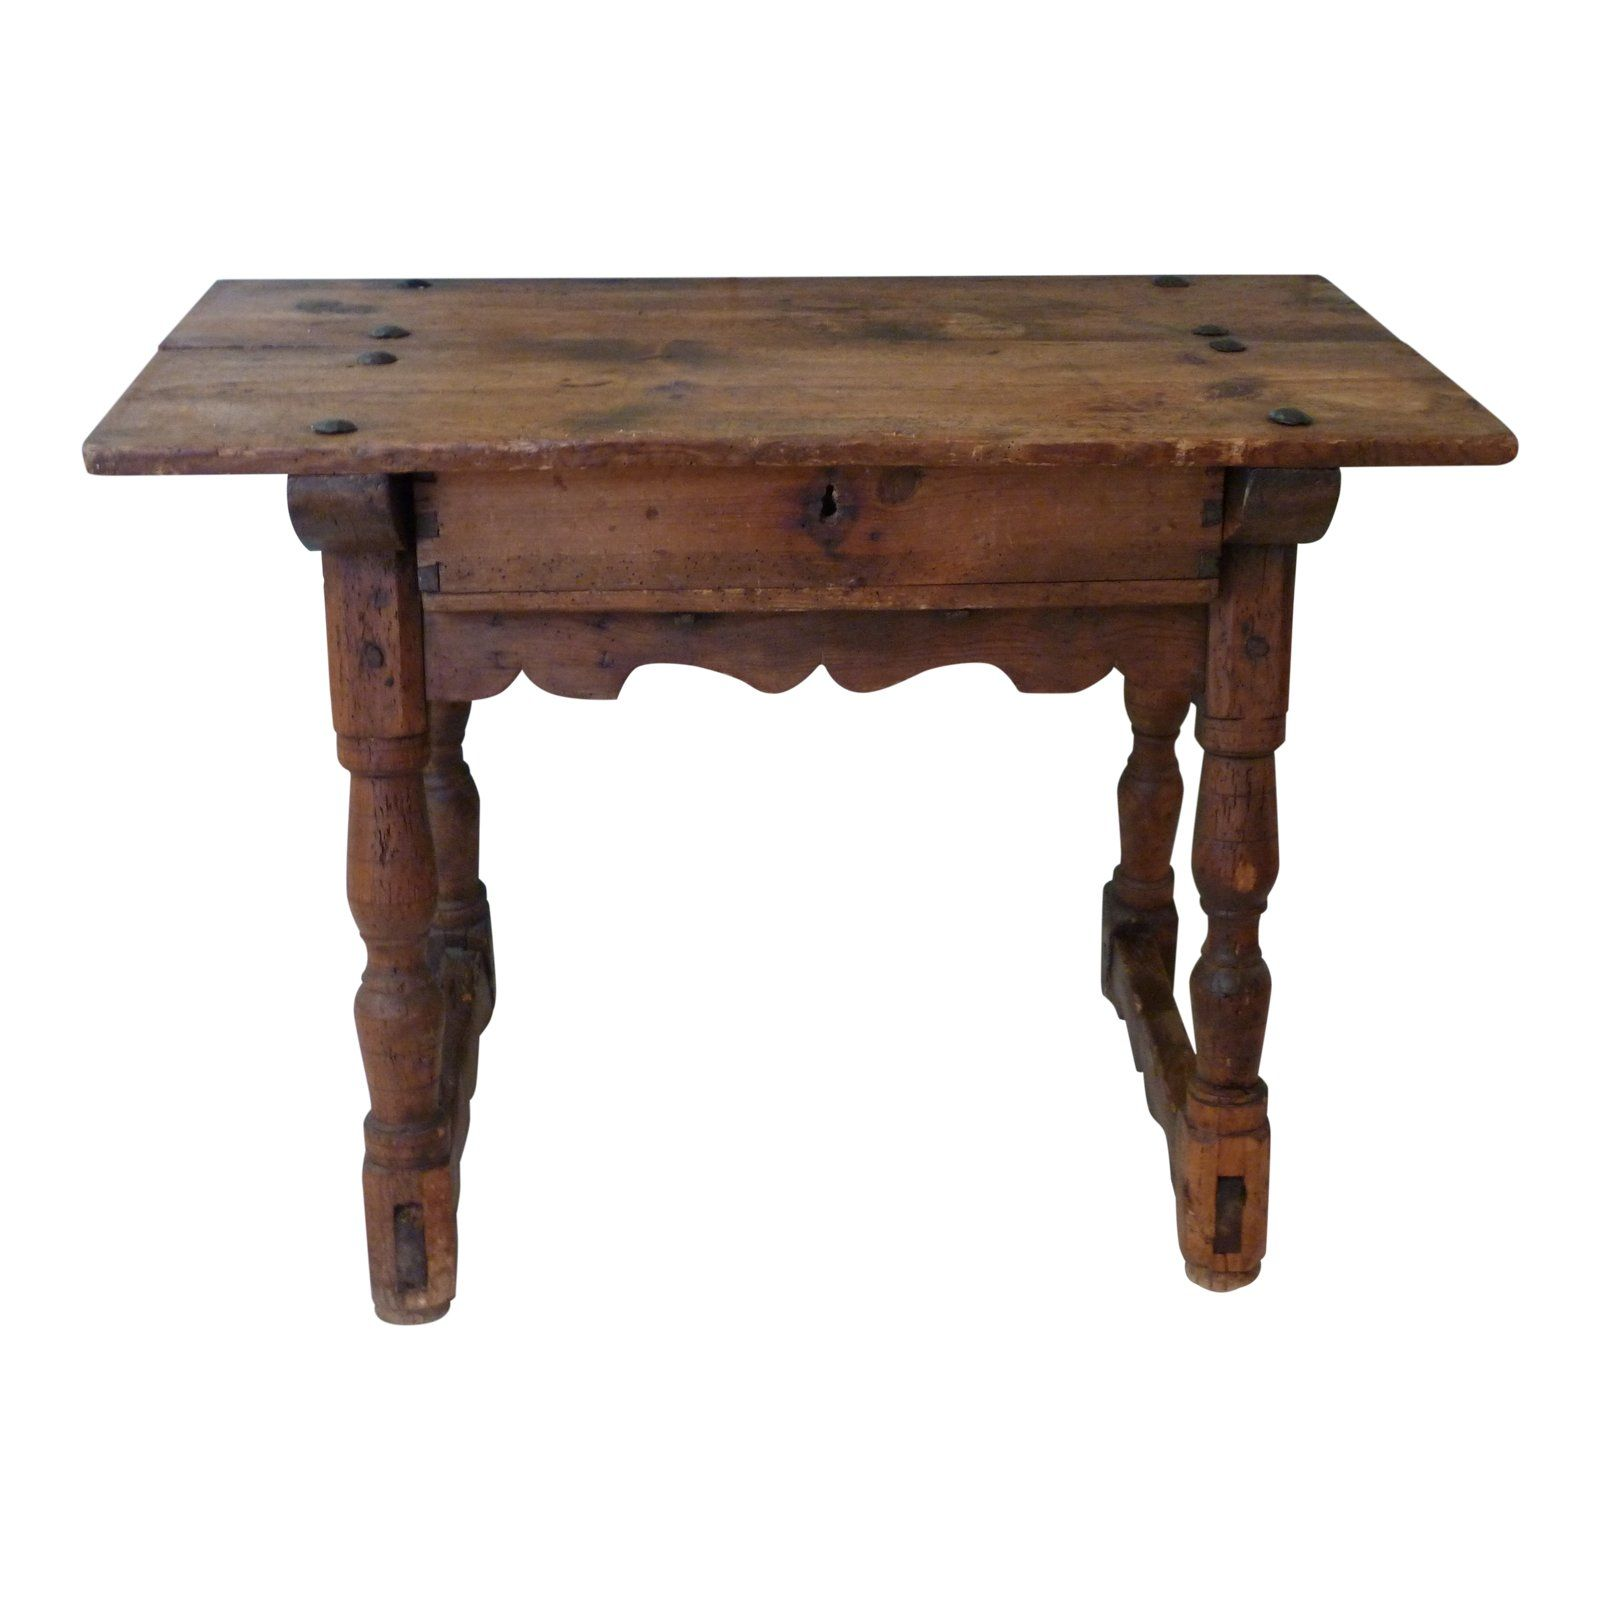 19th Century Rustic Spanish Console For Sale Spanish Style Homes Mediterranean Home Decor Rustic Dining Table [ 1600 x 1600 Pixel ]